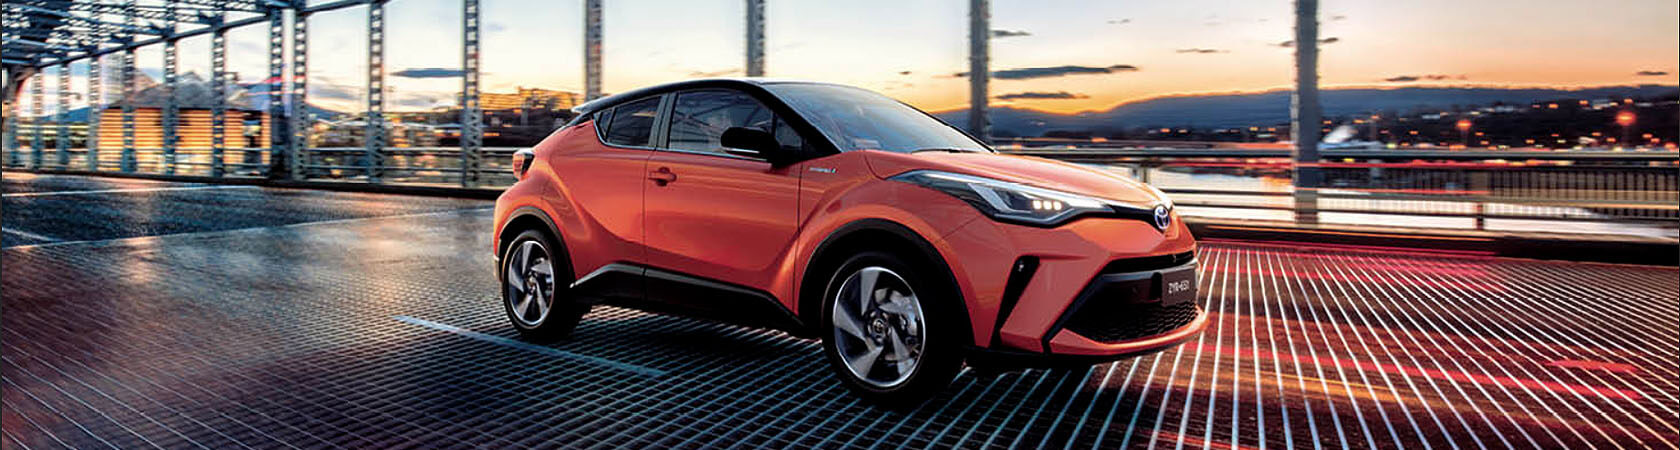 Peter Kittle Toyota - Port Lincoln C-HR